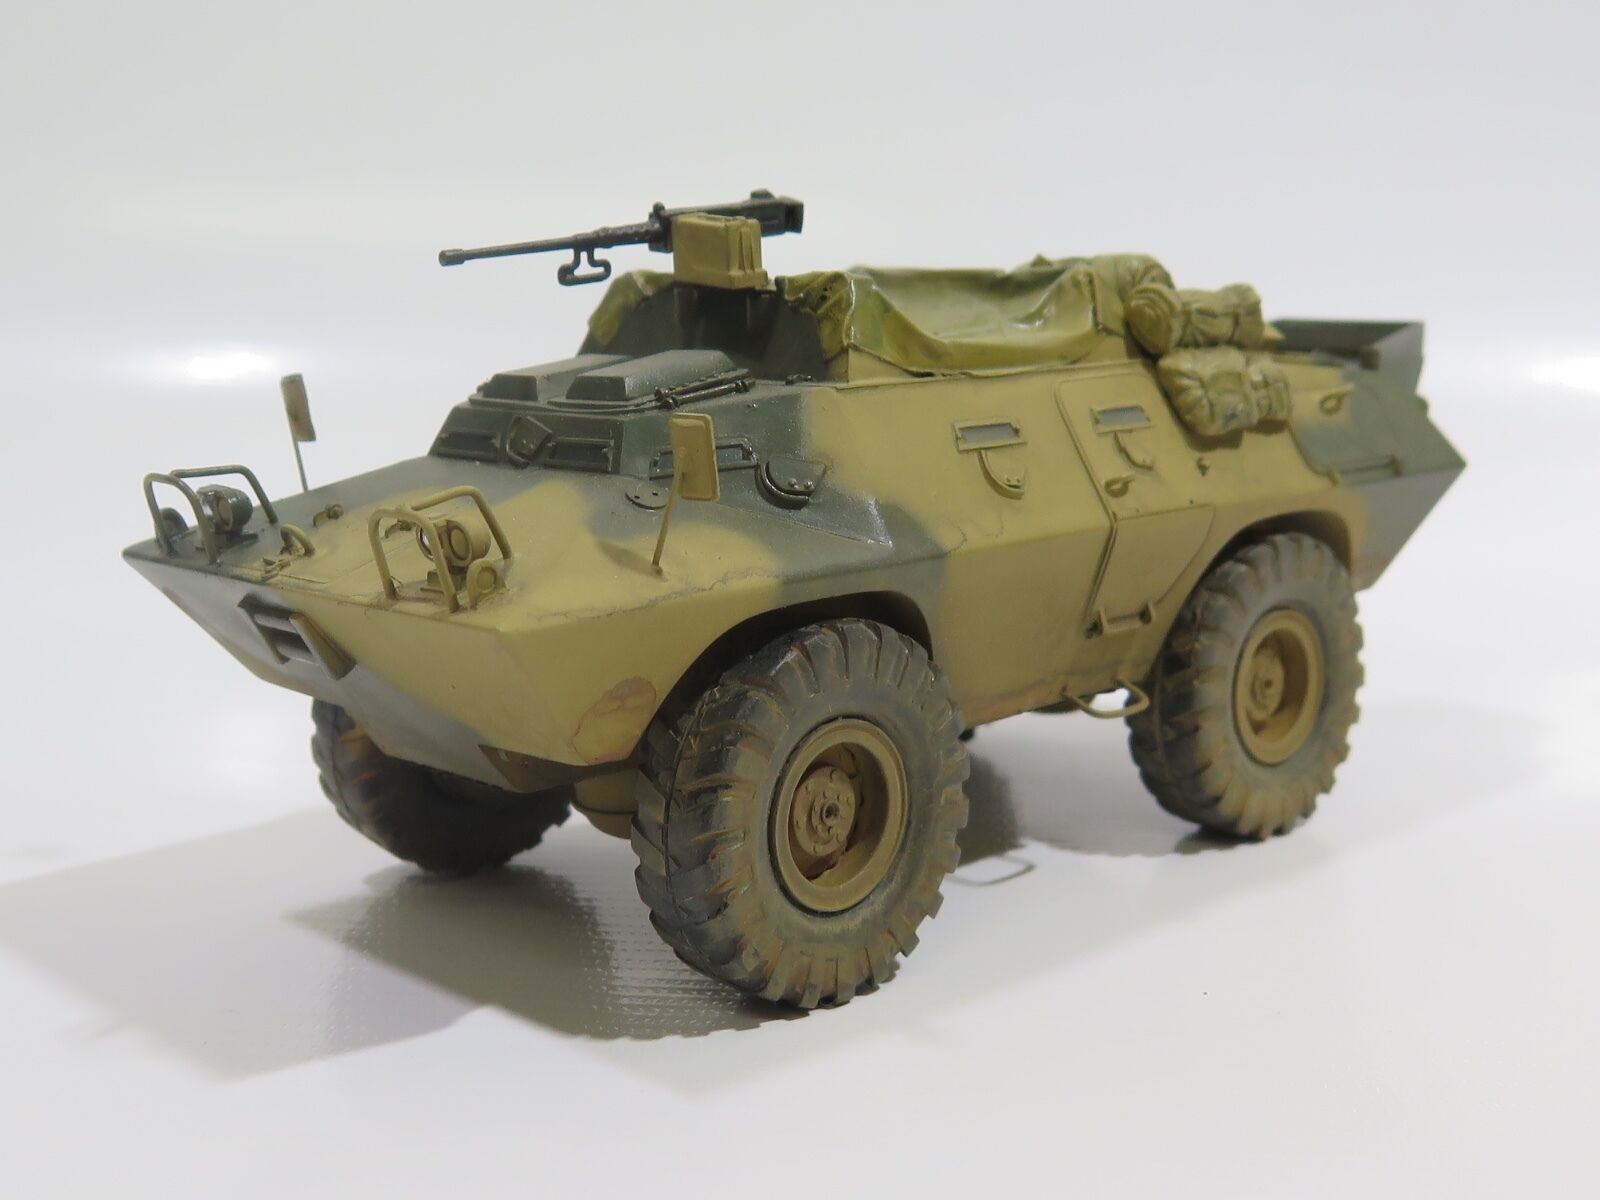 MY2037 - 1/35 PRO BUILT - Resin Verlinden XM706 Commando car Prototype